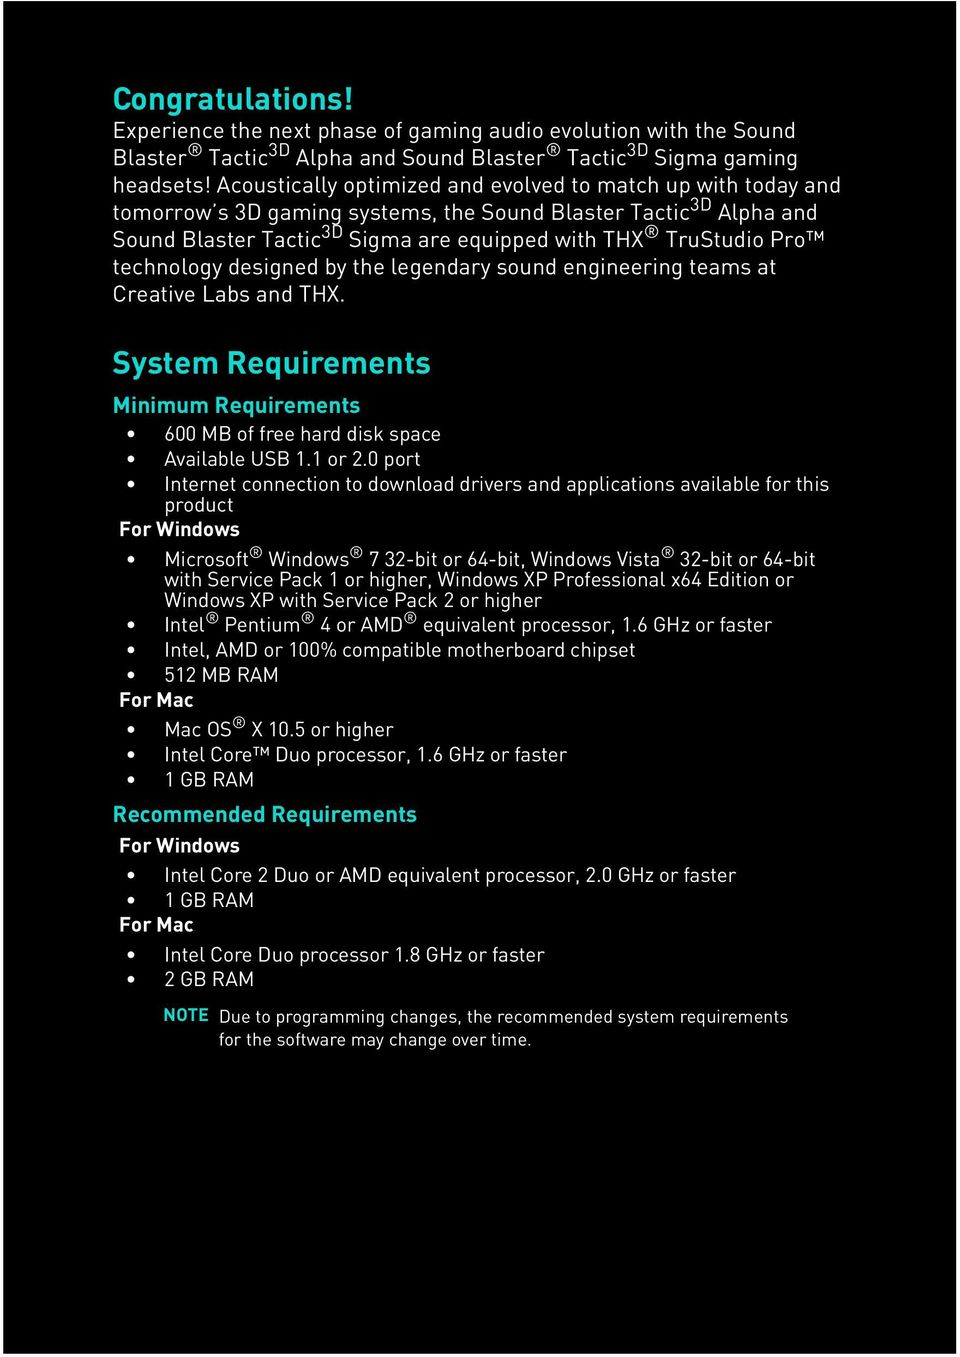 System Requirements  Minimum Requirements  Recommended